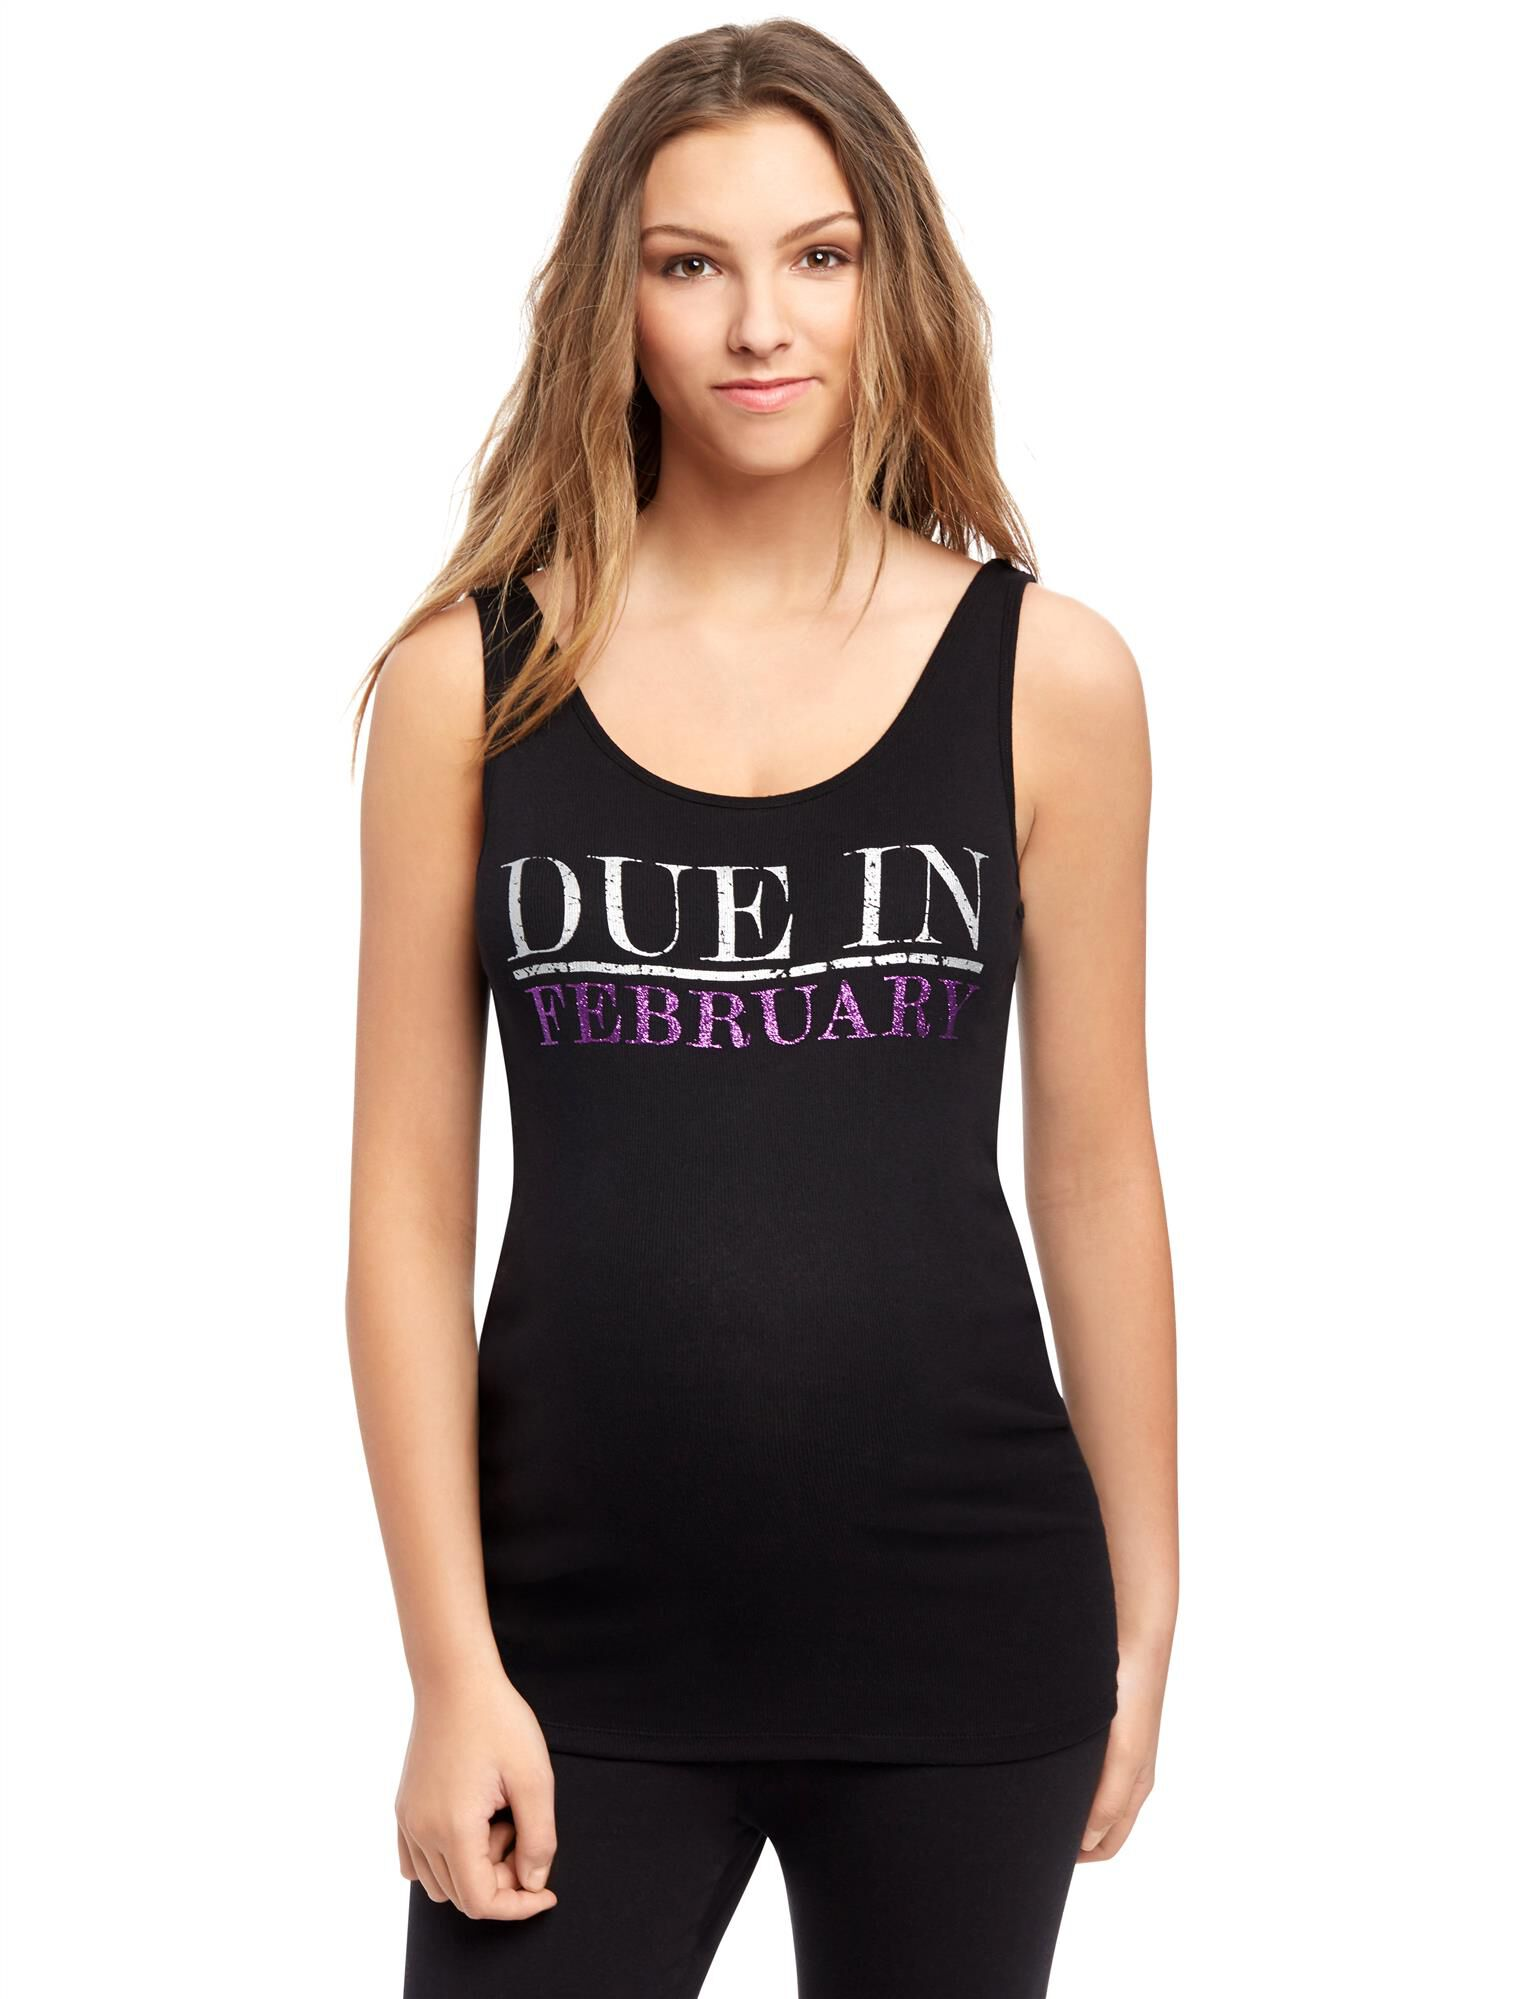 Due in February Maternity Graphic Tank Top